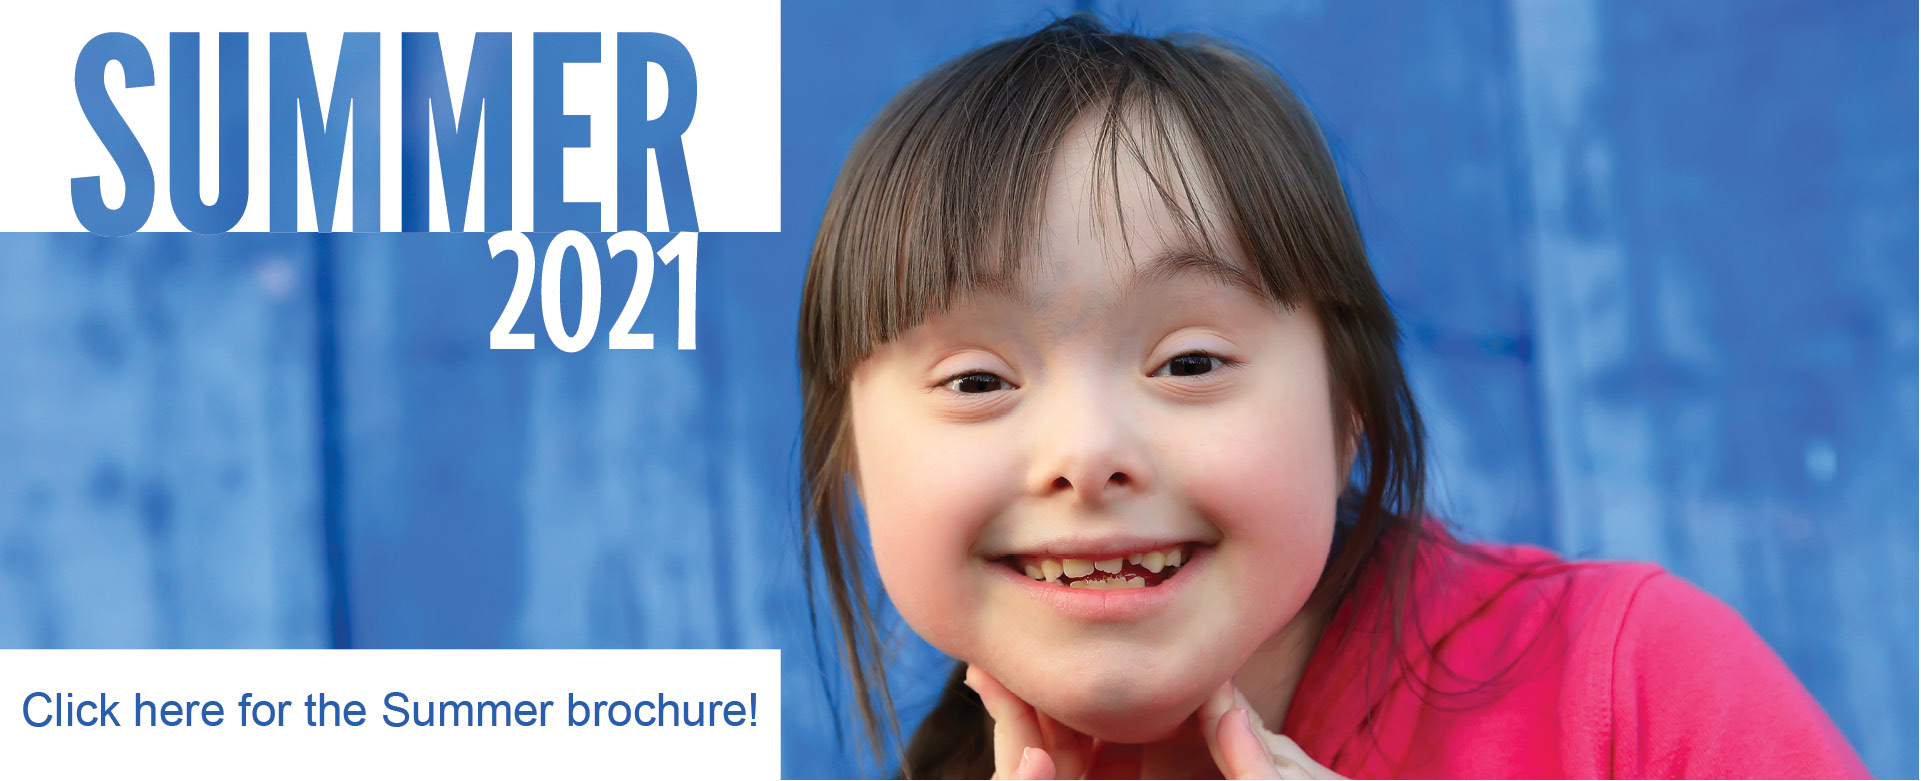 SSSRA Summer 2021 brochure cover. Image of a young girl smiling. Text on image says Summer 2021 and to click on the image for the Summer brochure.